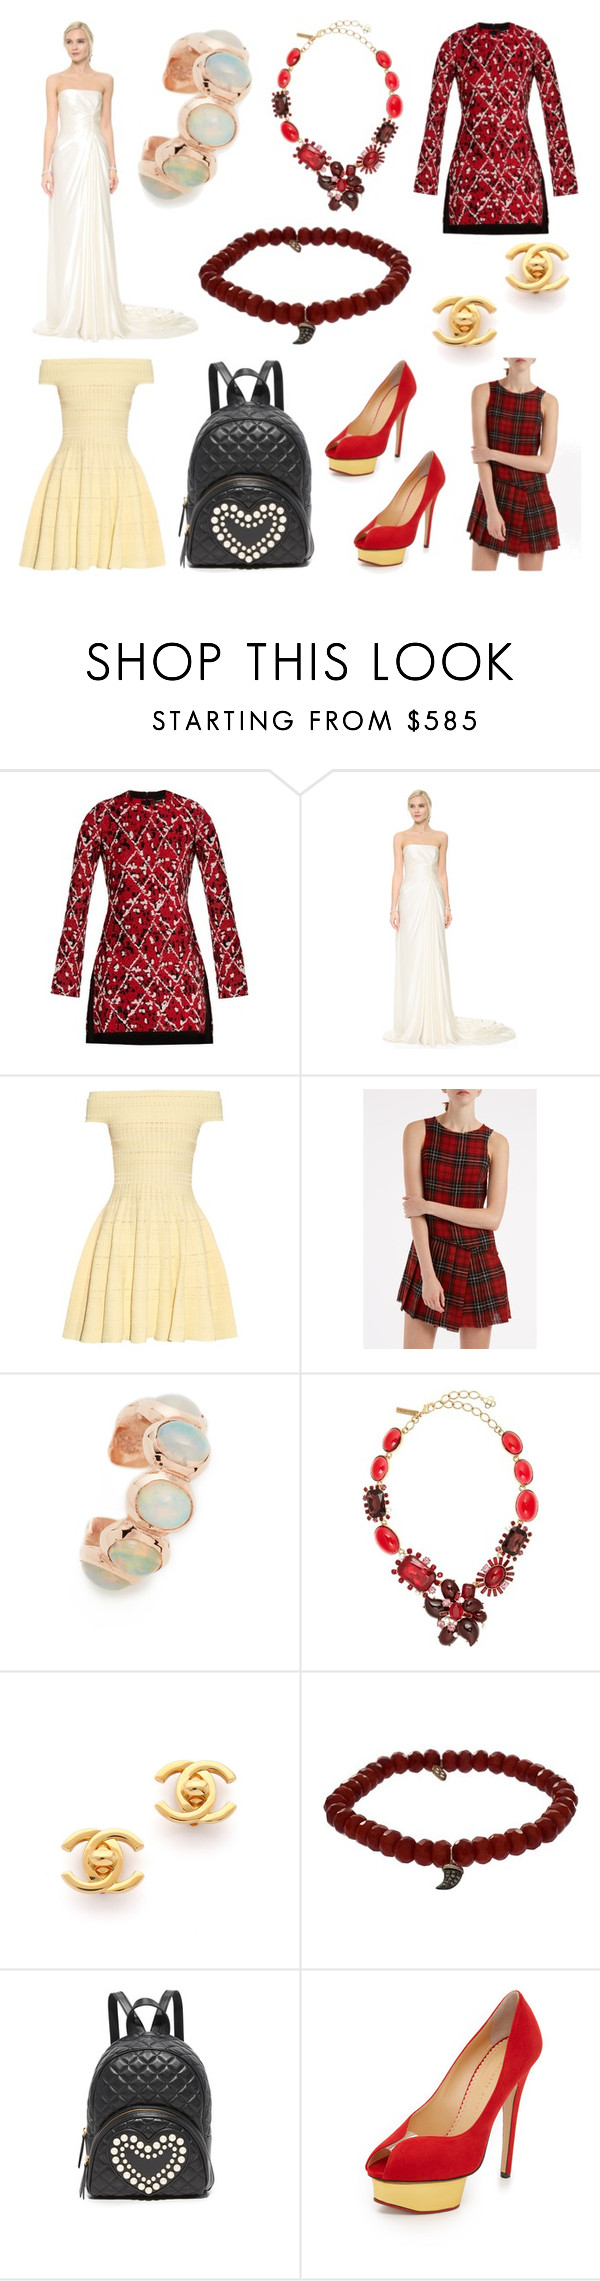 """""""Be yourself.....&&&"""" by cate-jennifer on Polyvore featuring Proenza Schouler, Reem Acra, Alexander McQueen, R13, Jacquie Aiche, Oscar de la Renta, Sydney Evan, Boutique Moschino, Charlotte Olympia and vintage"""